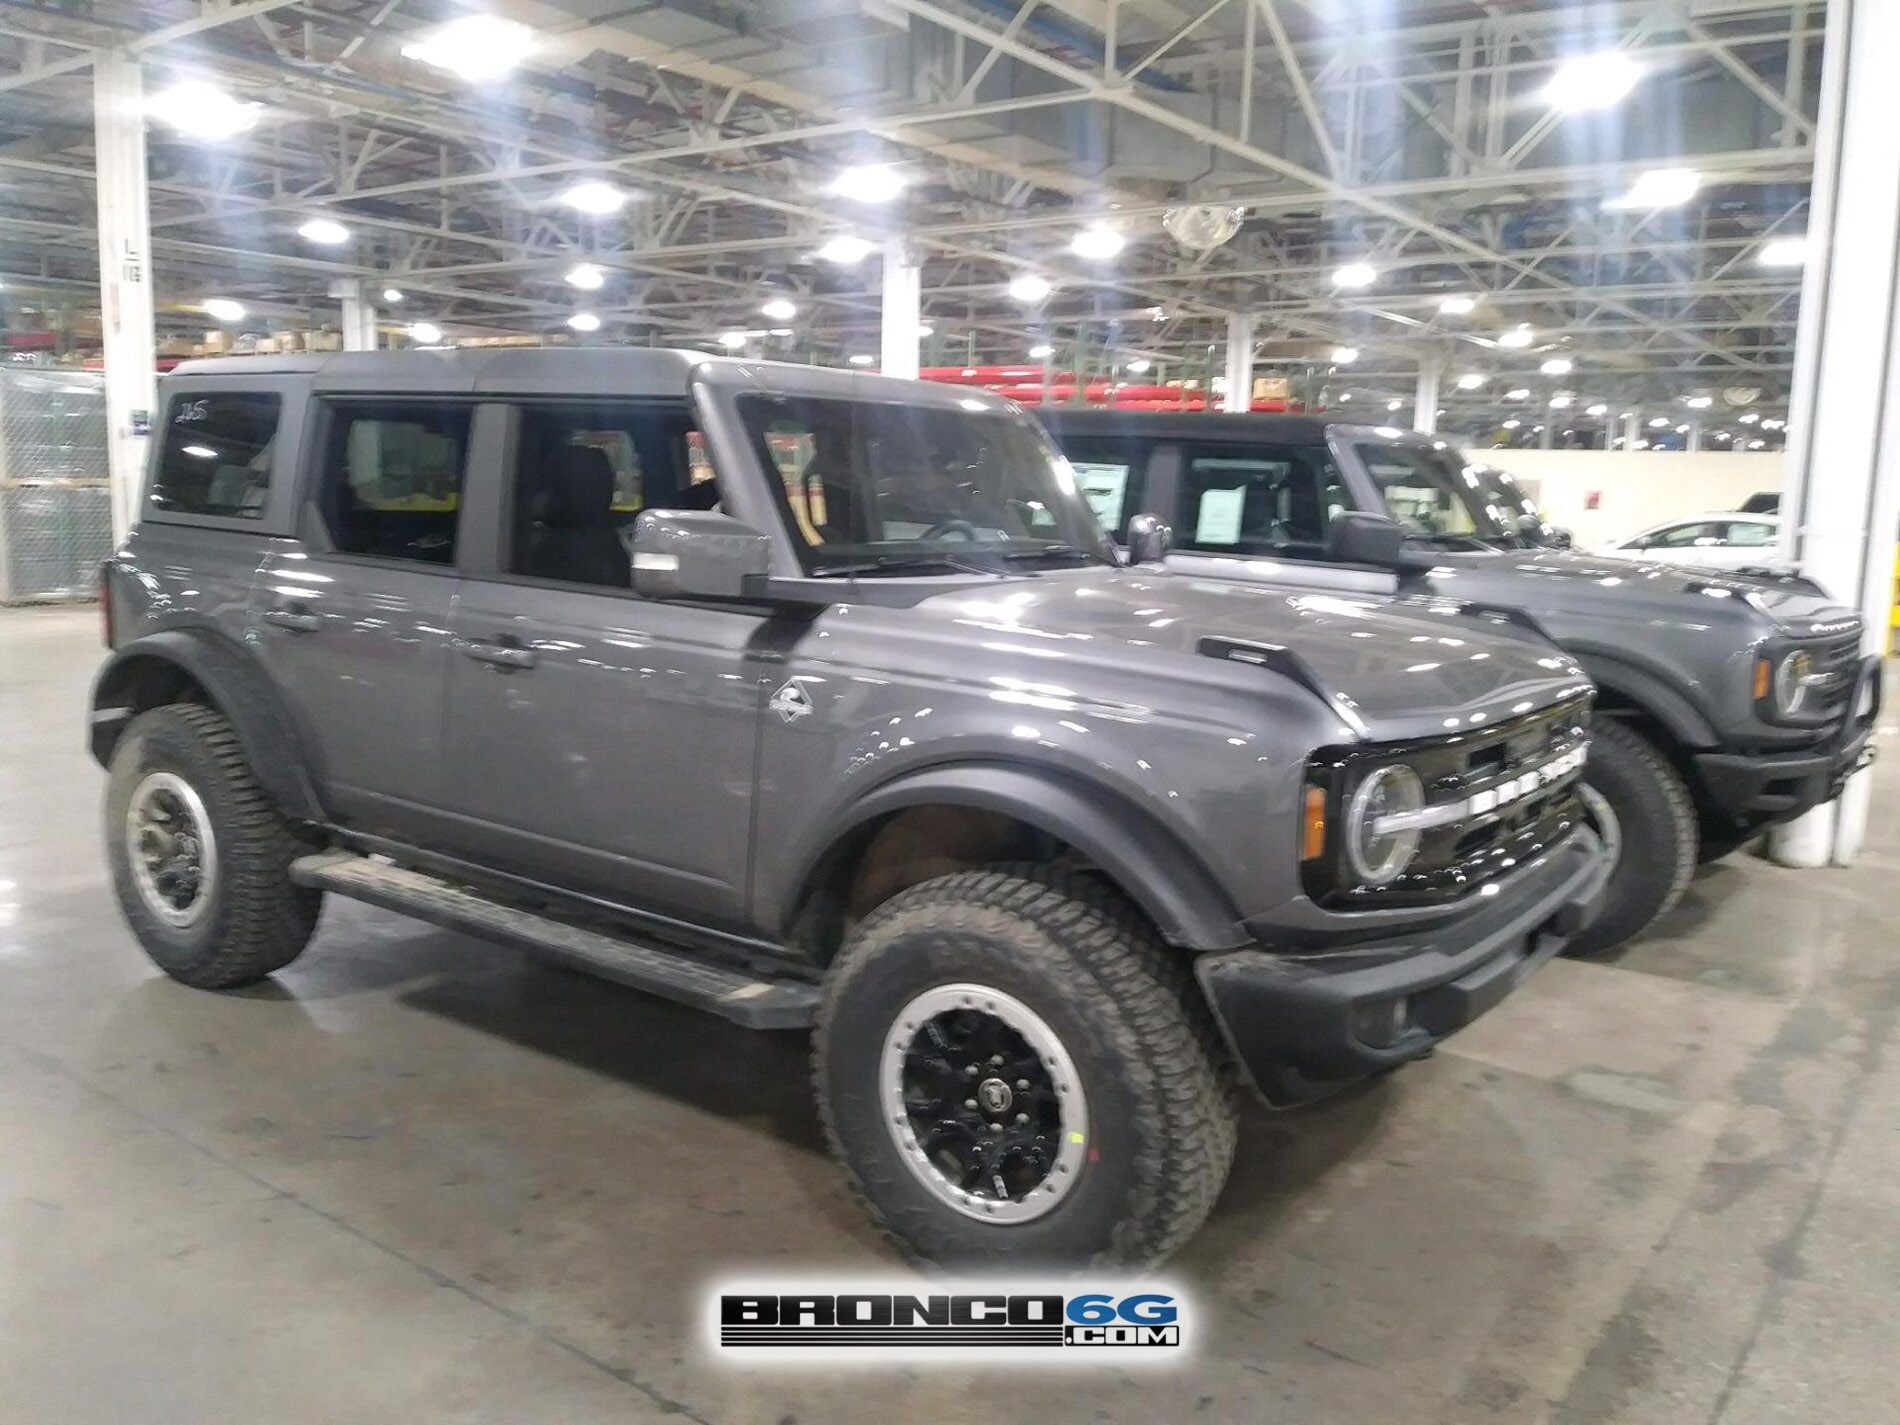 2021 Bronco Sasquatch Carbonized Gray Base + Outer Banks 3.jpg